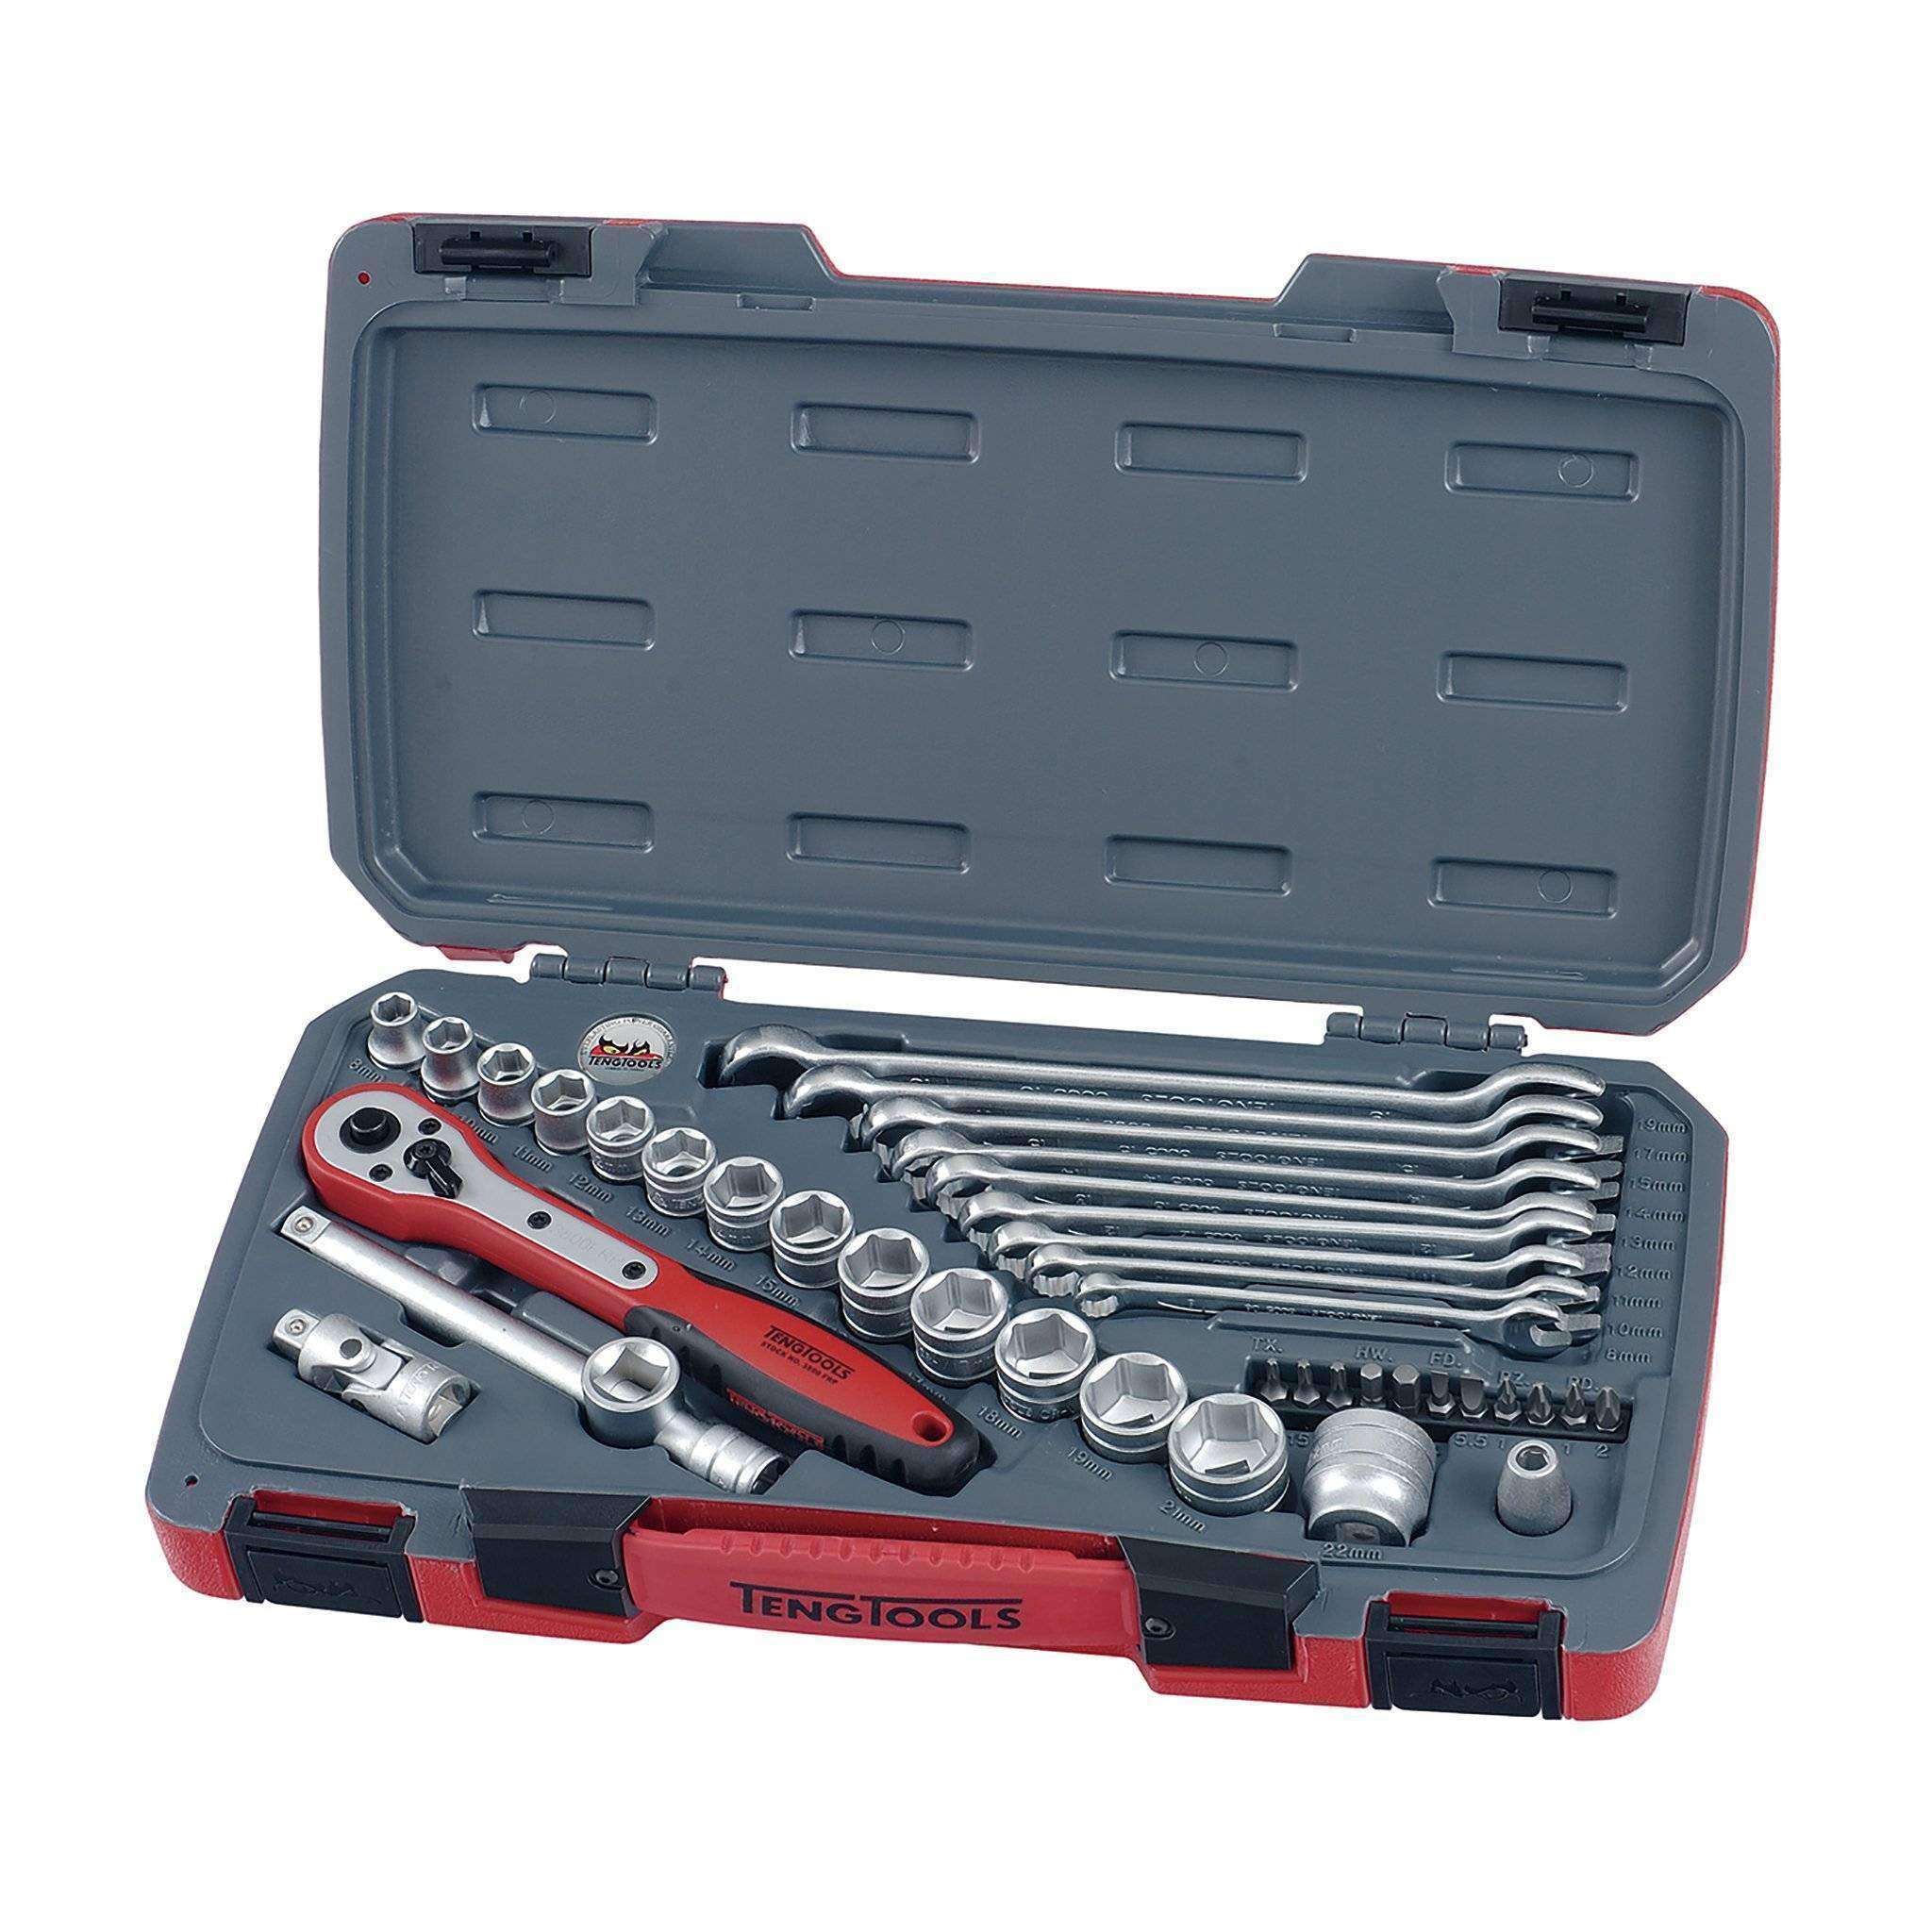 Teng Tools - 39 Piece 3/8 inch Drive Socket and Wrench Set - TEN-O-T3840 - Teng Tools USA